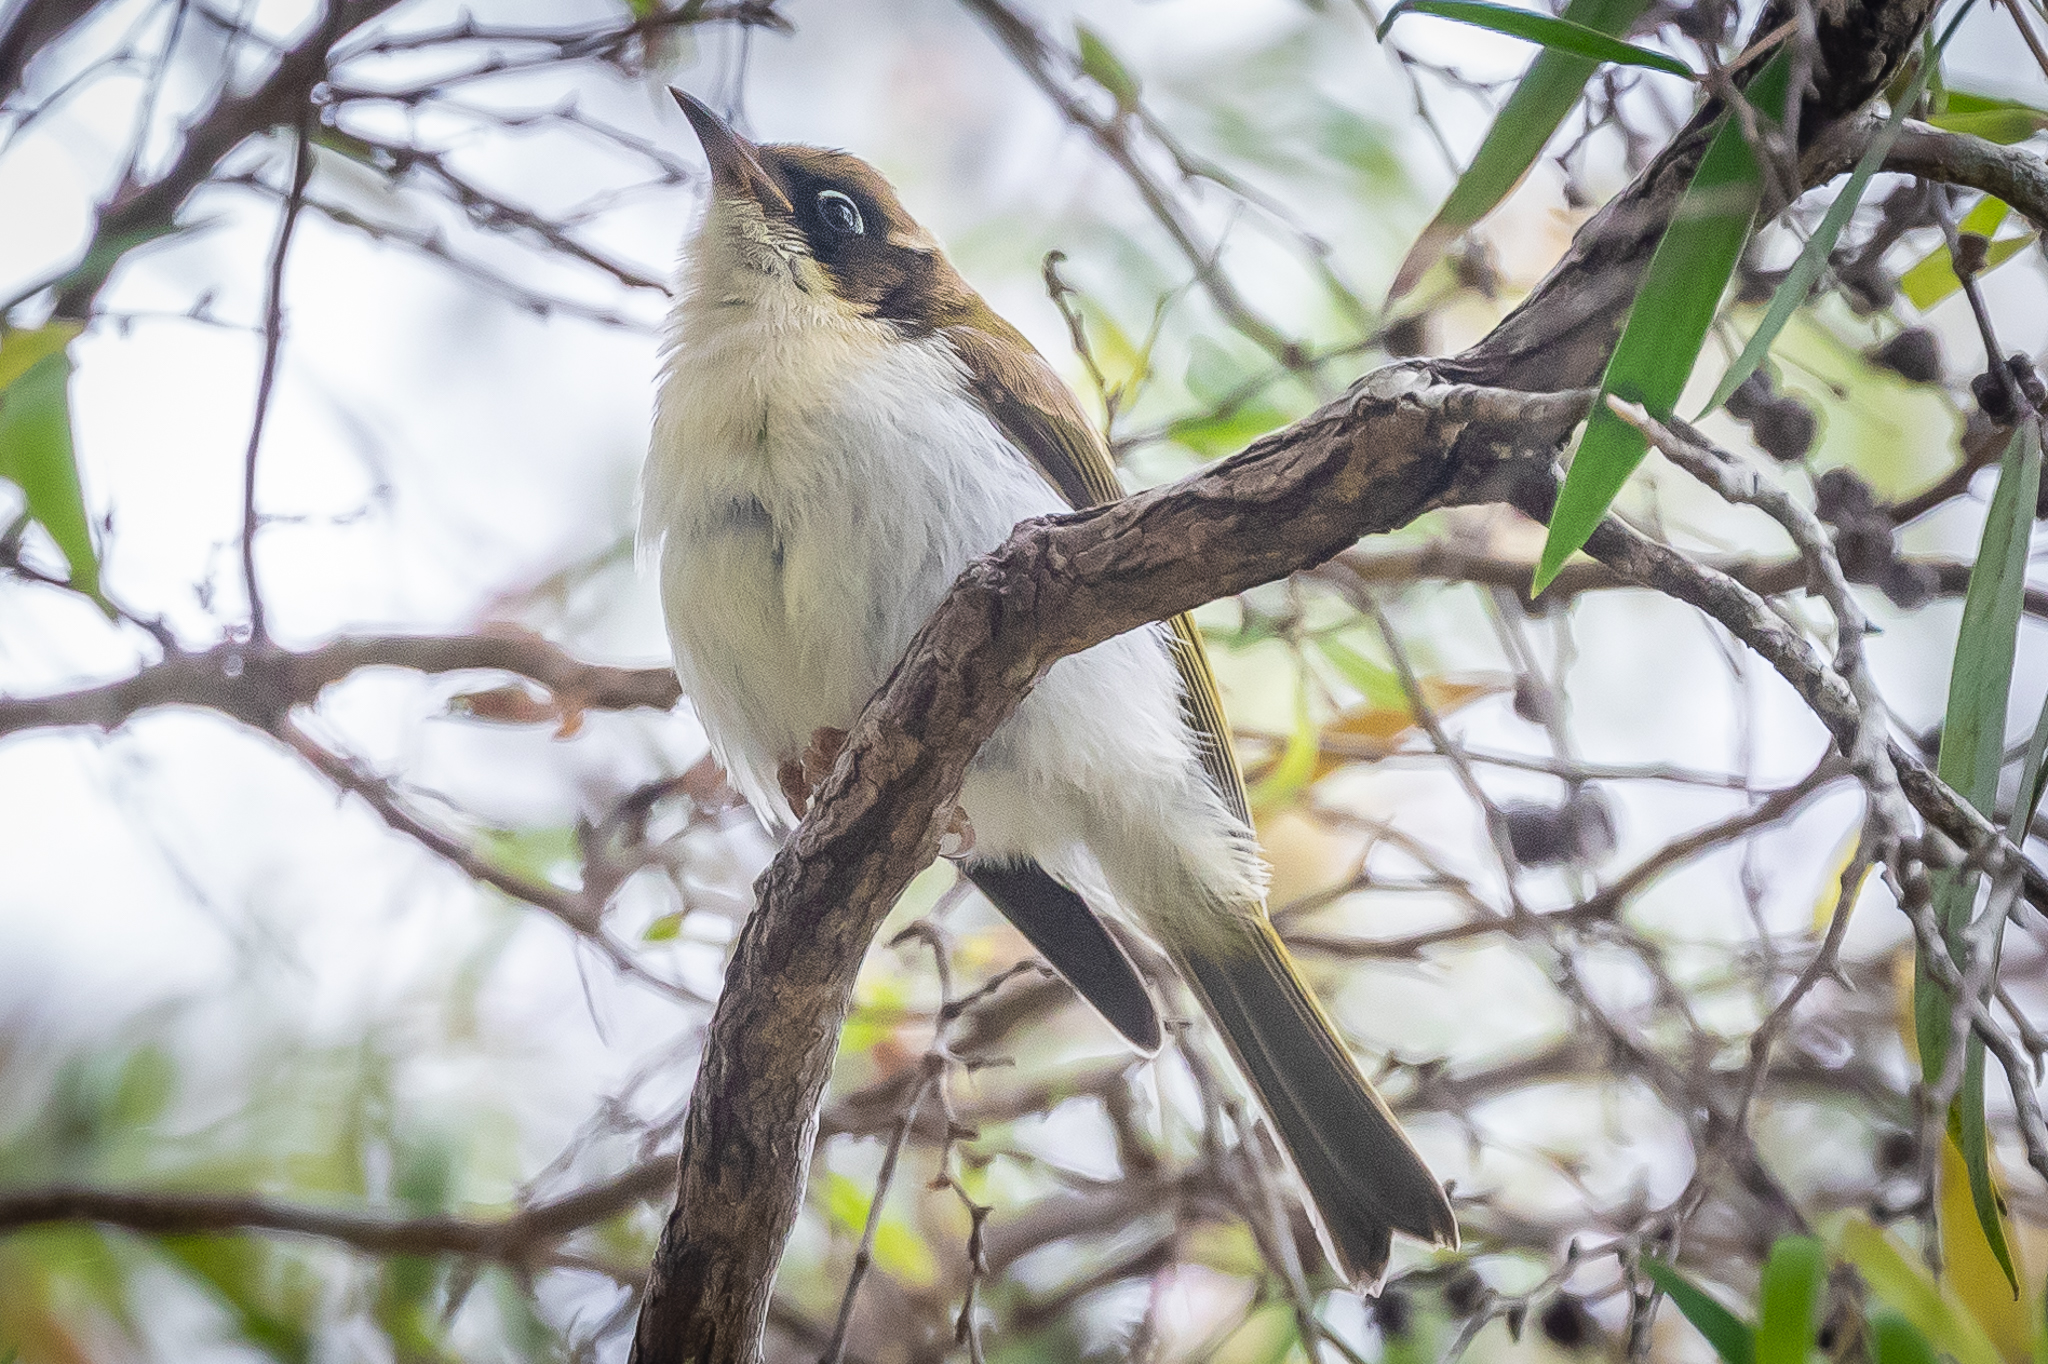 The eastern White-naped Honeyeater has a distinctive red eye crescent but in the Western White-naped Honeyeater the eye colour is light blue to almost white, as is apparent in this bird.